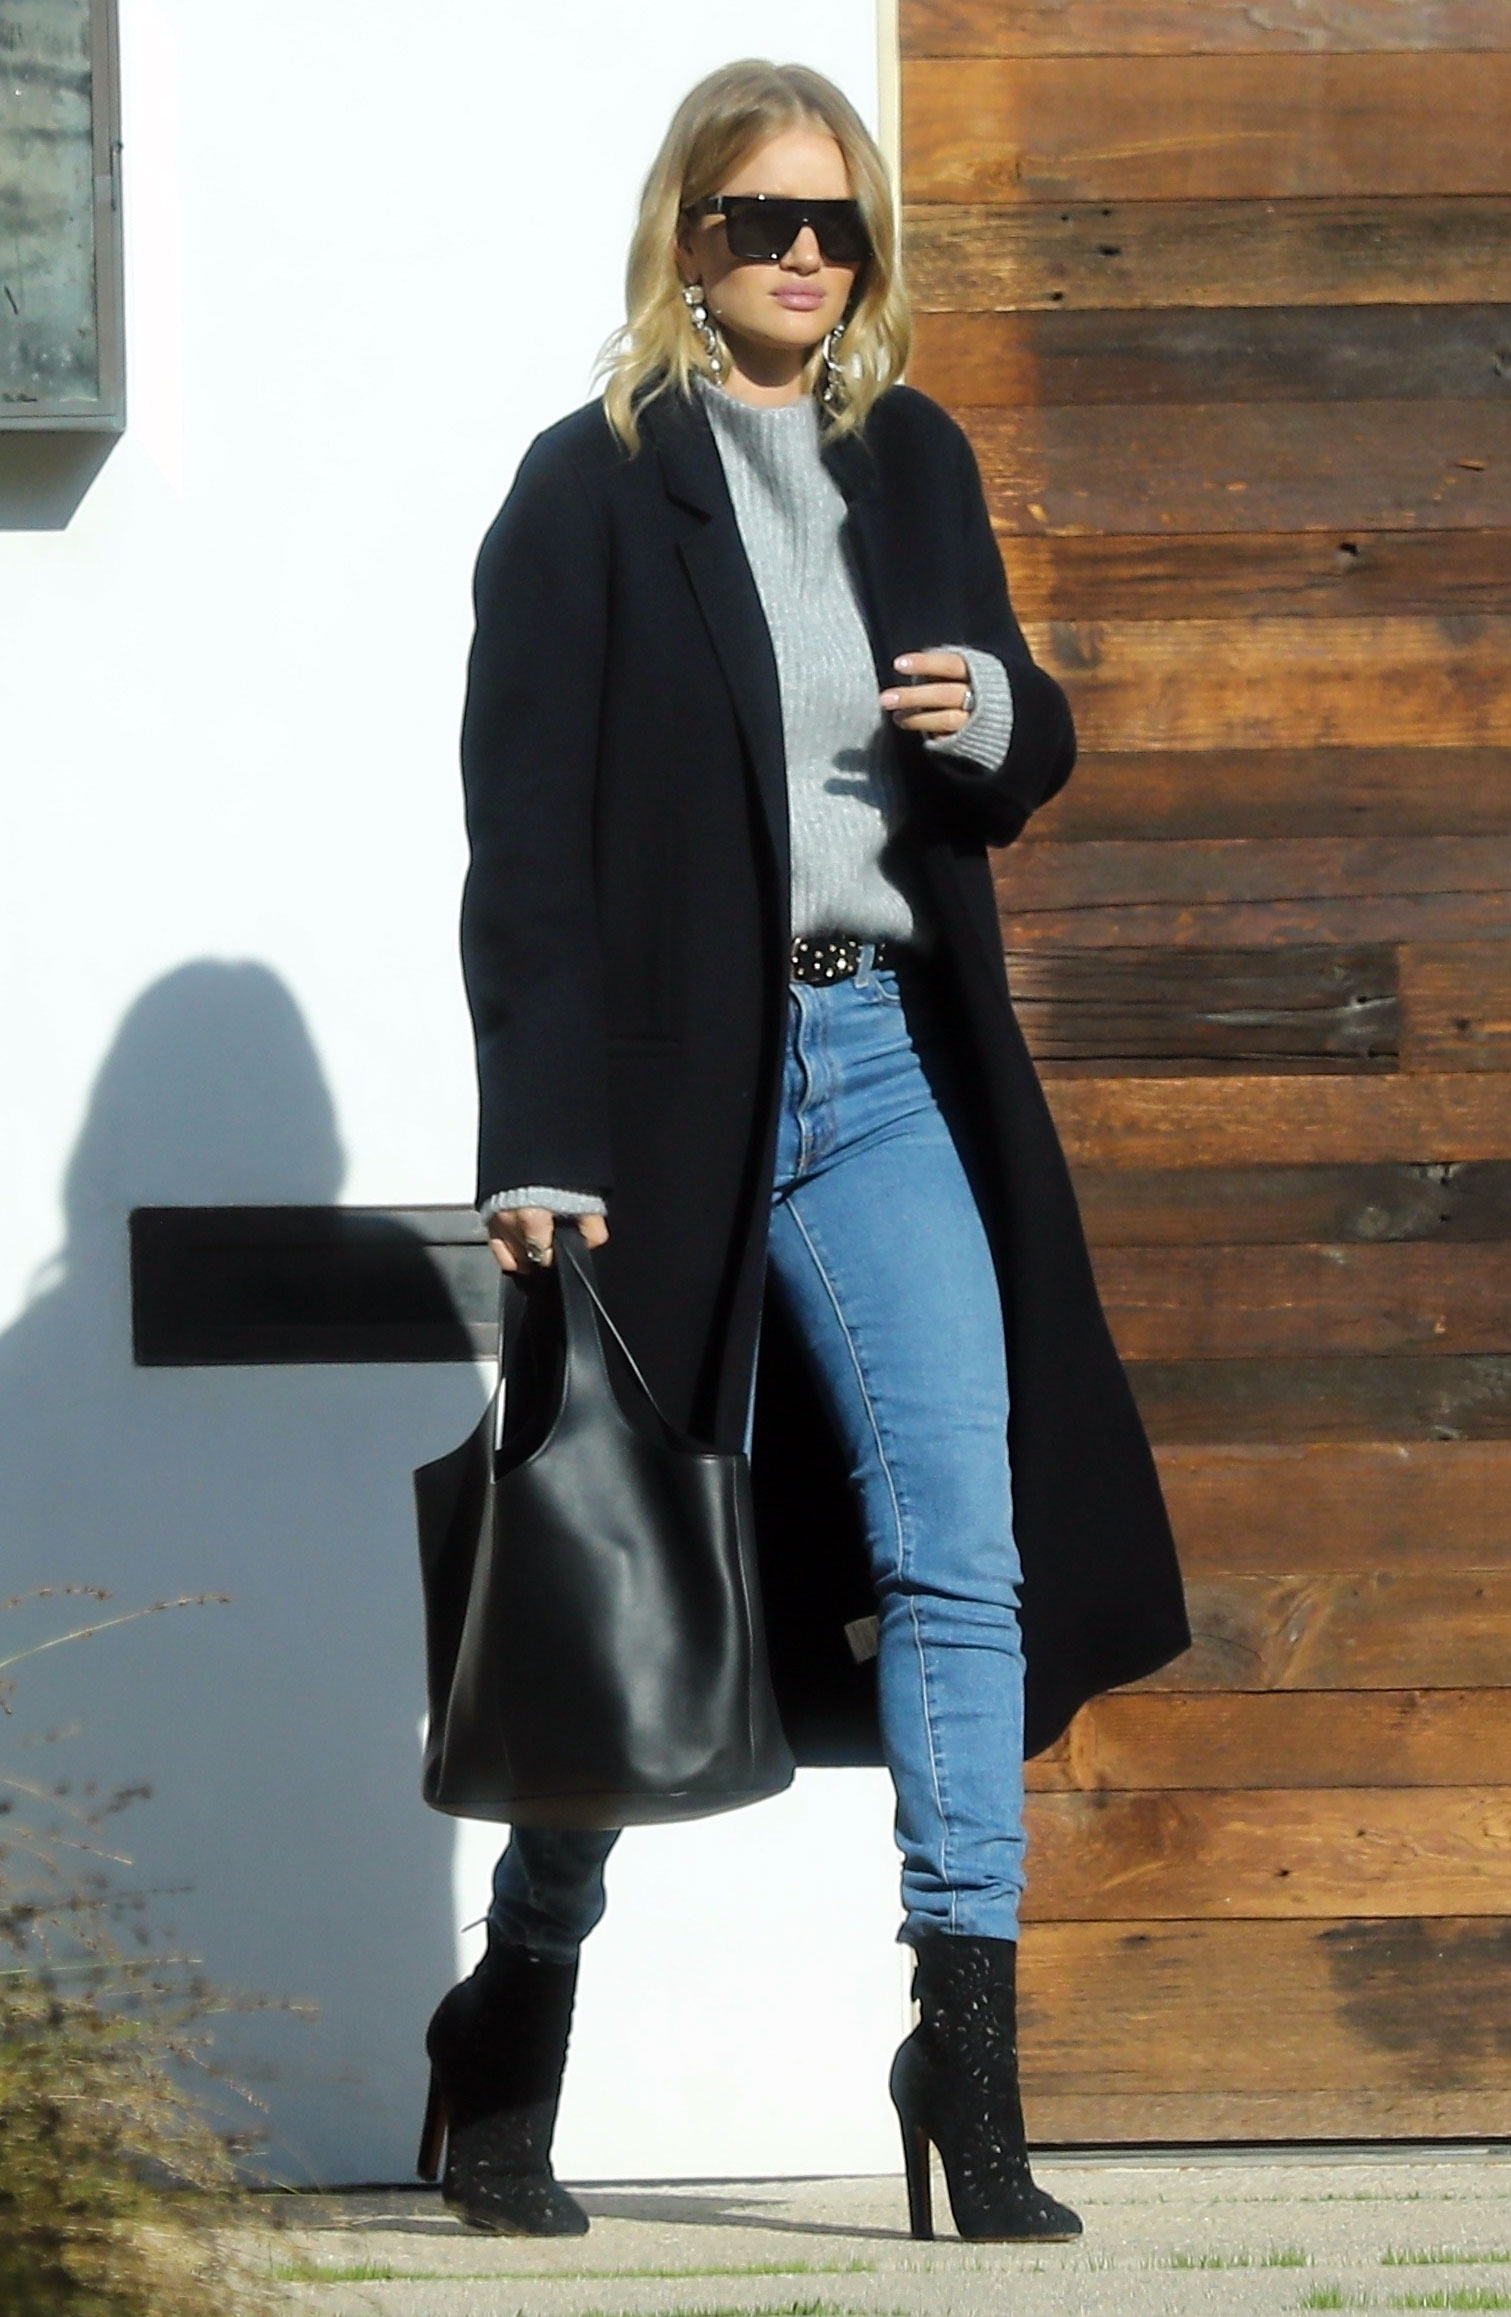 990e7cf20ef Rosie Huntington-Whiteley s Black Wool Coat and Gray Sweater.